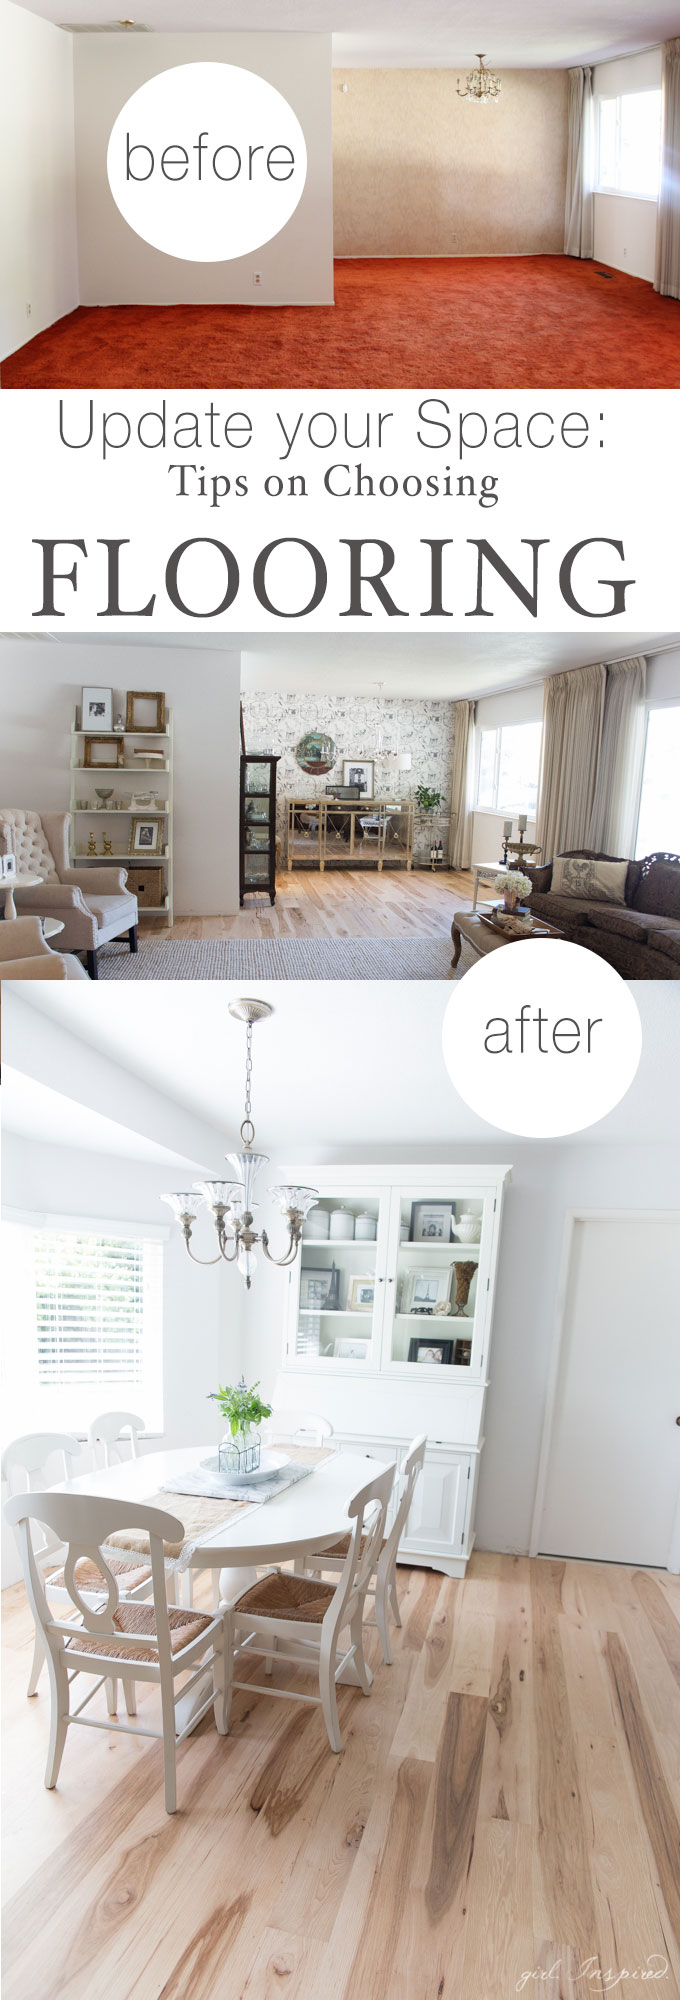 Rustic Hickory Hardwood Flooring - gorgeous floors for the main living areas of the house. Loaded with character and upscale beauty - what an improvement! Find TIPS for choosing the right flooring in your home.